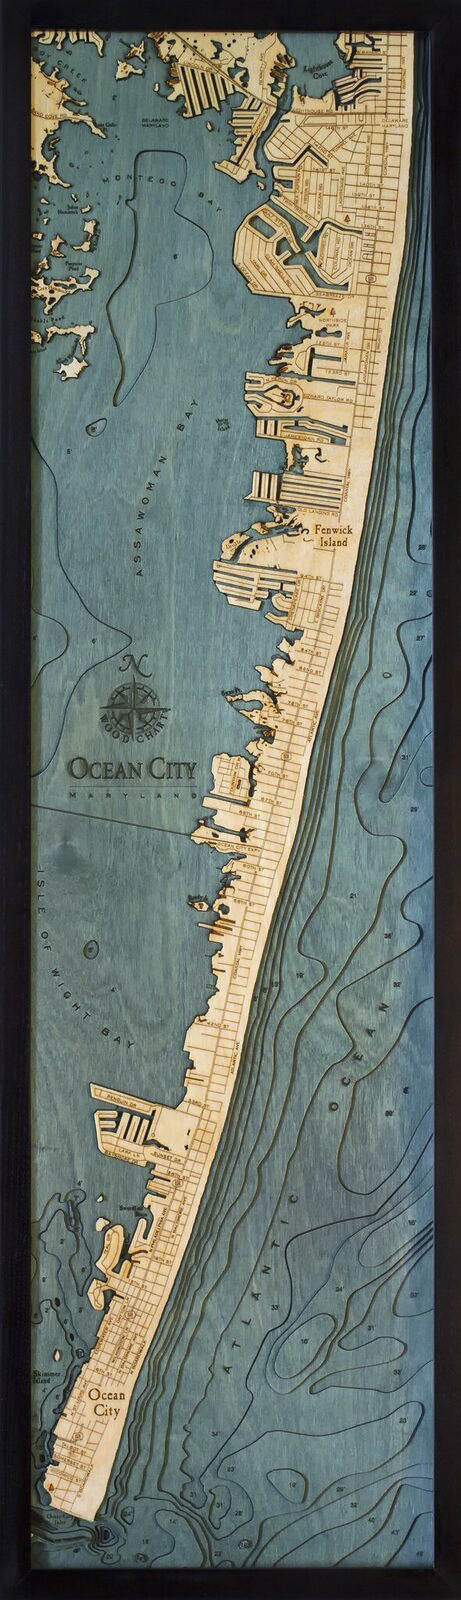 Bathymetric Map Ocean City, Maryland